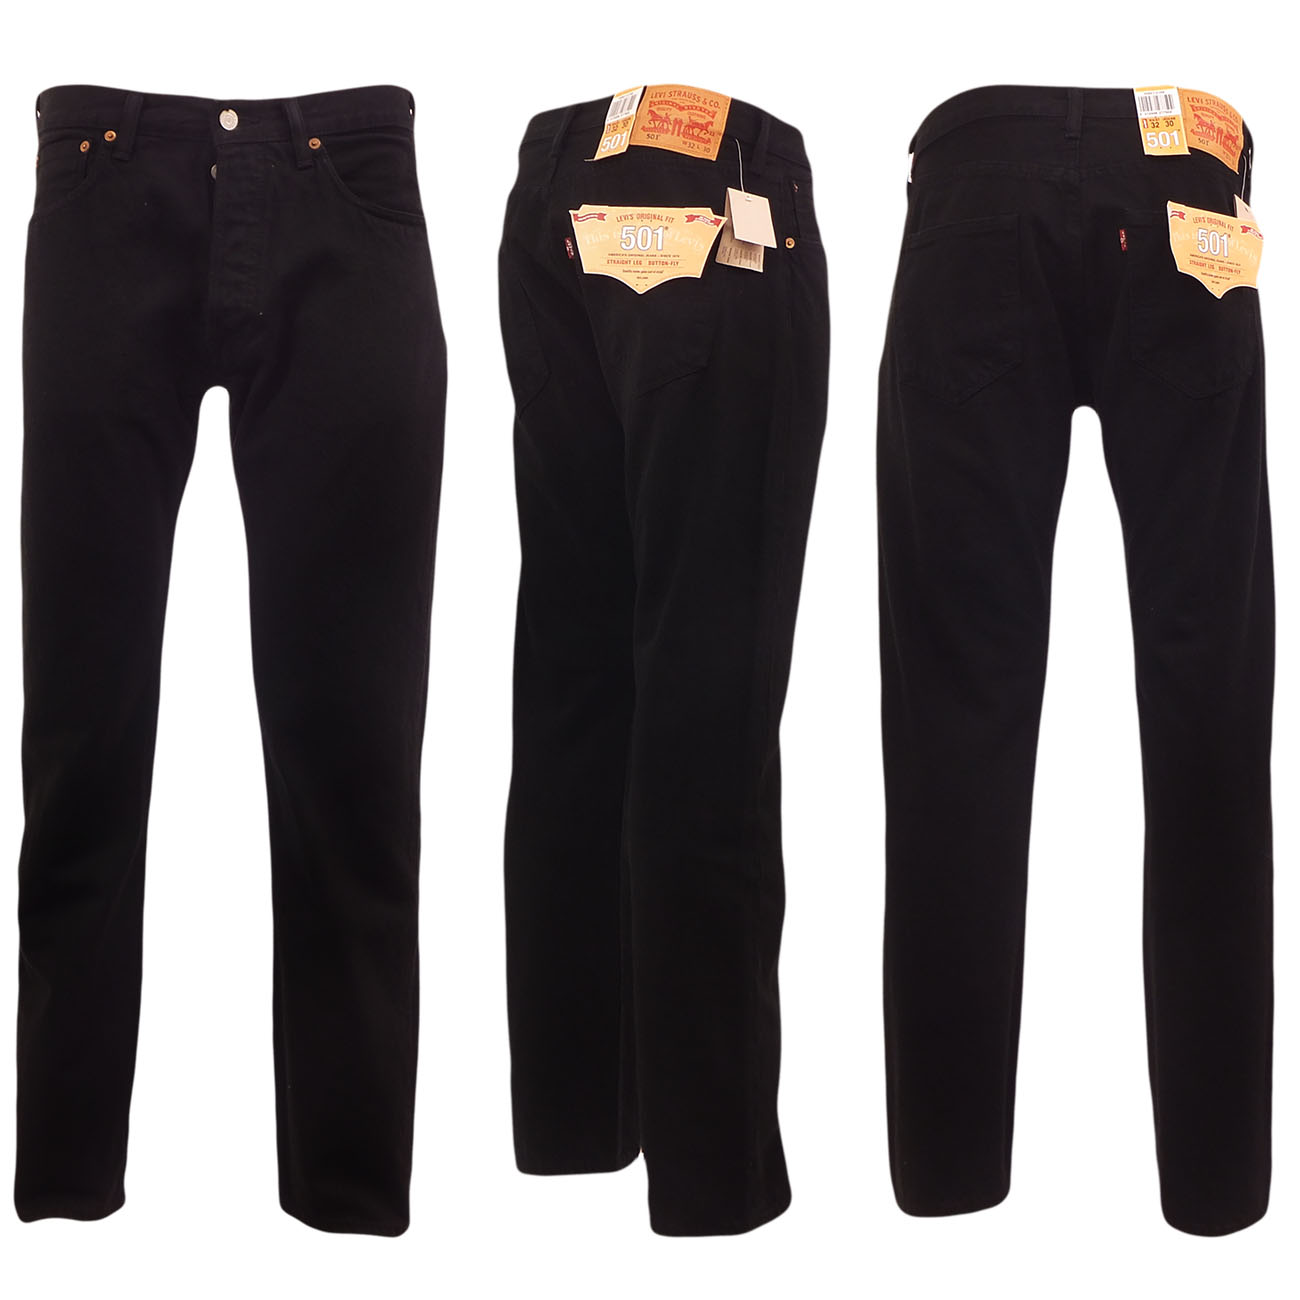 Levi 501 Jeans Mens Levi's Strauss Denim Straight Fit Trouser Pant Button Fly